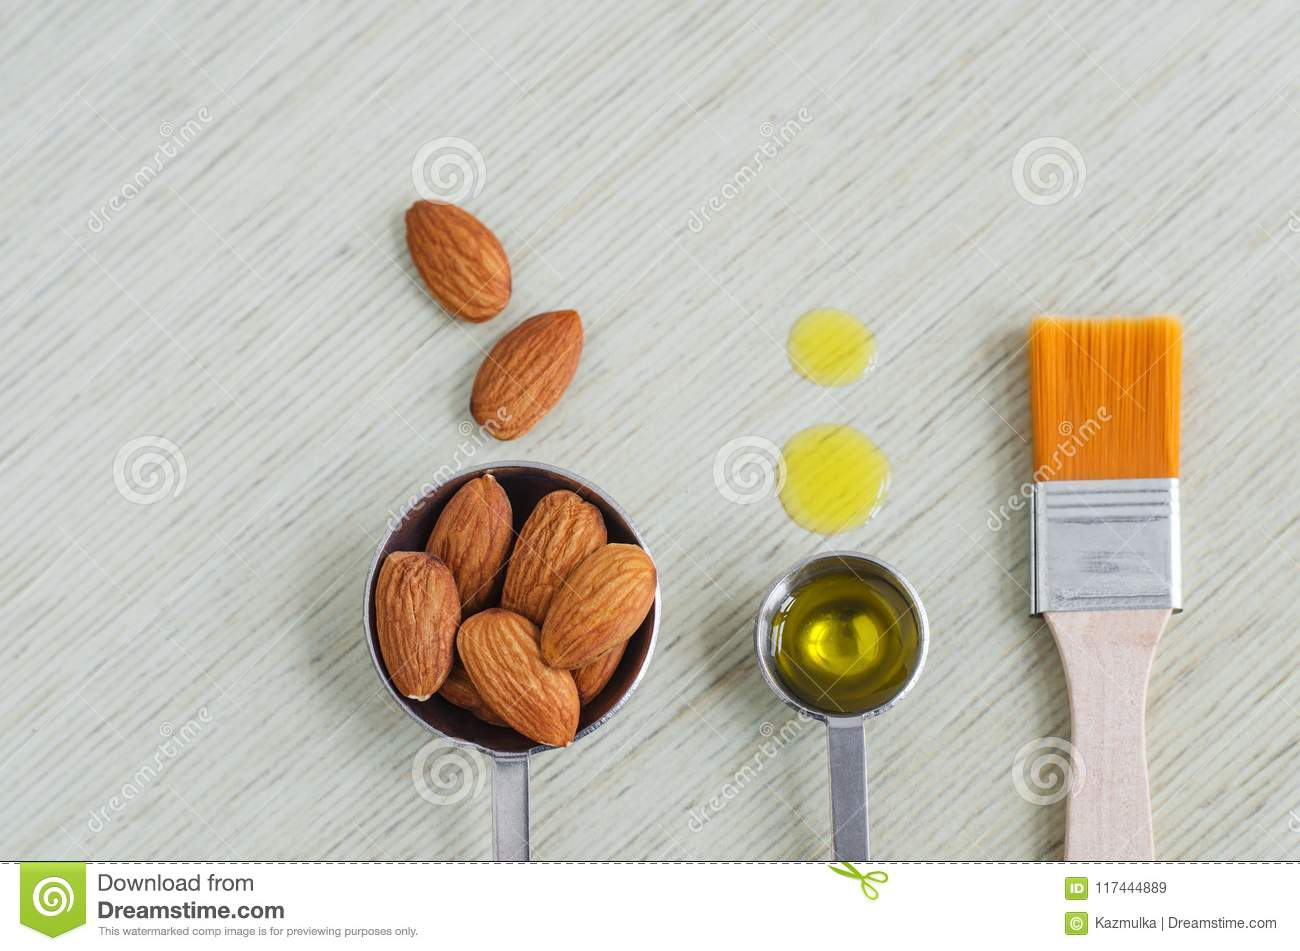 Small Scoops With Raw Almonds, Almond Oil And Cosmetic Brush